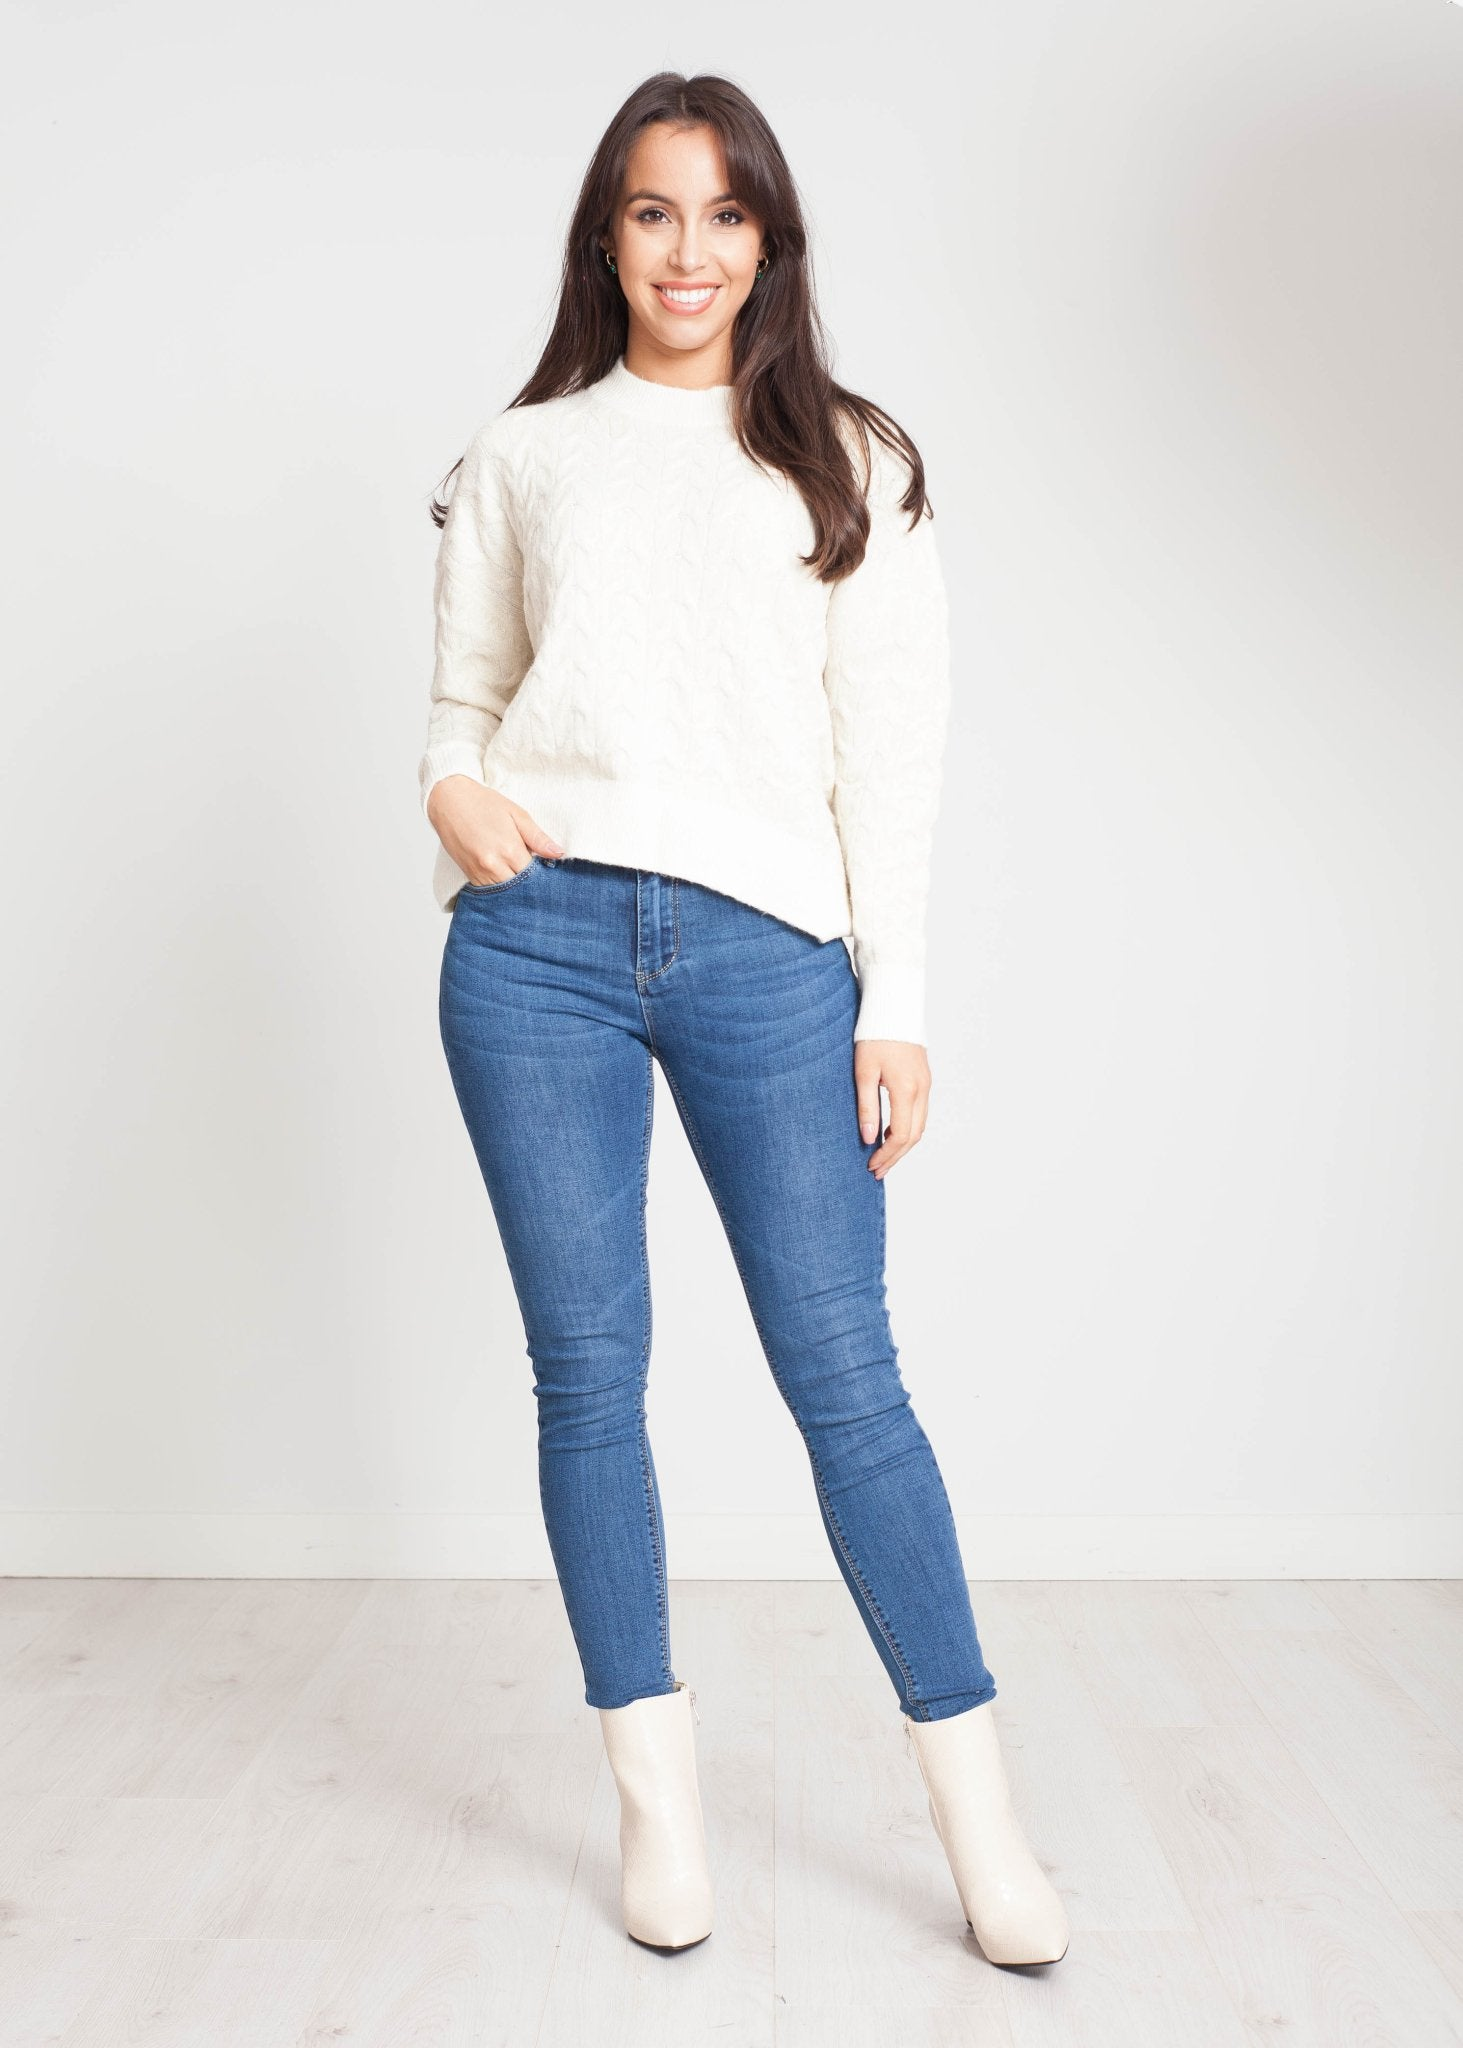 Heidi Cable Knit Jumper In Cream - The Walk in Wardrobe